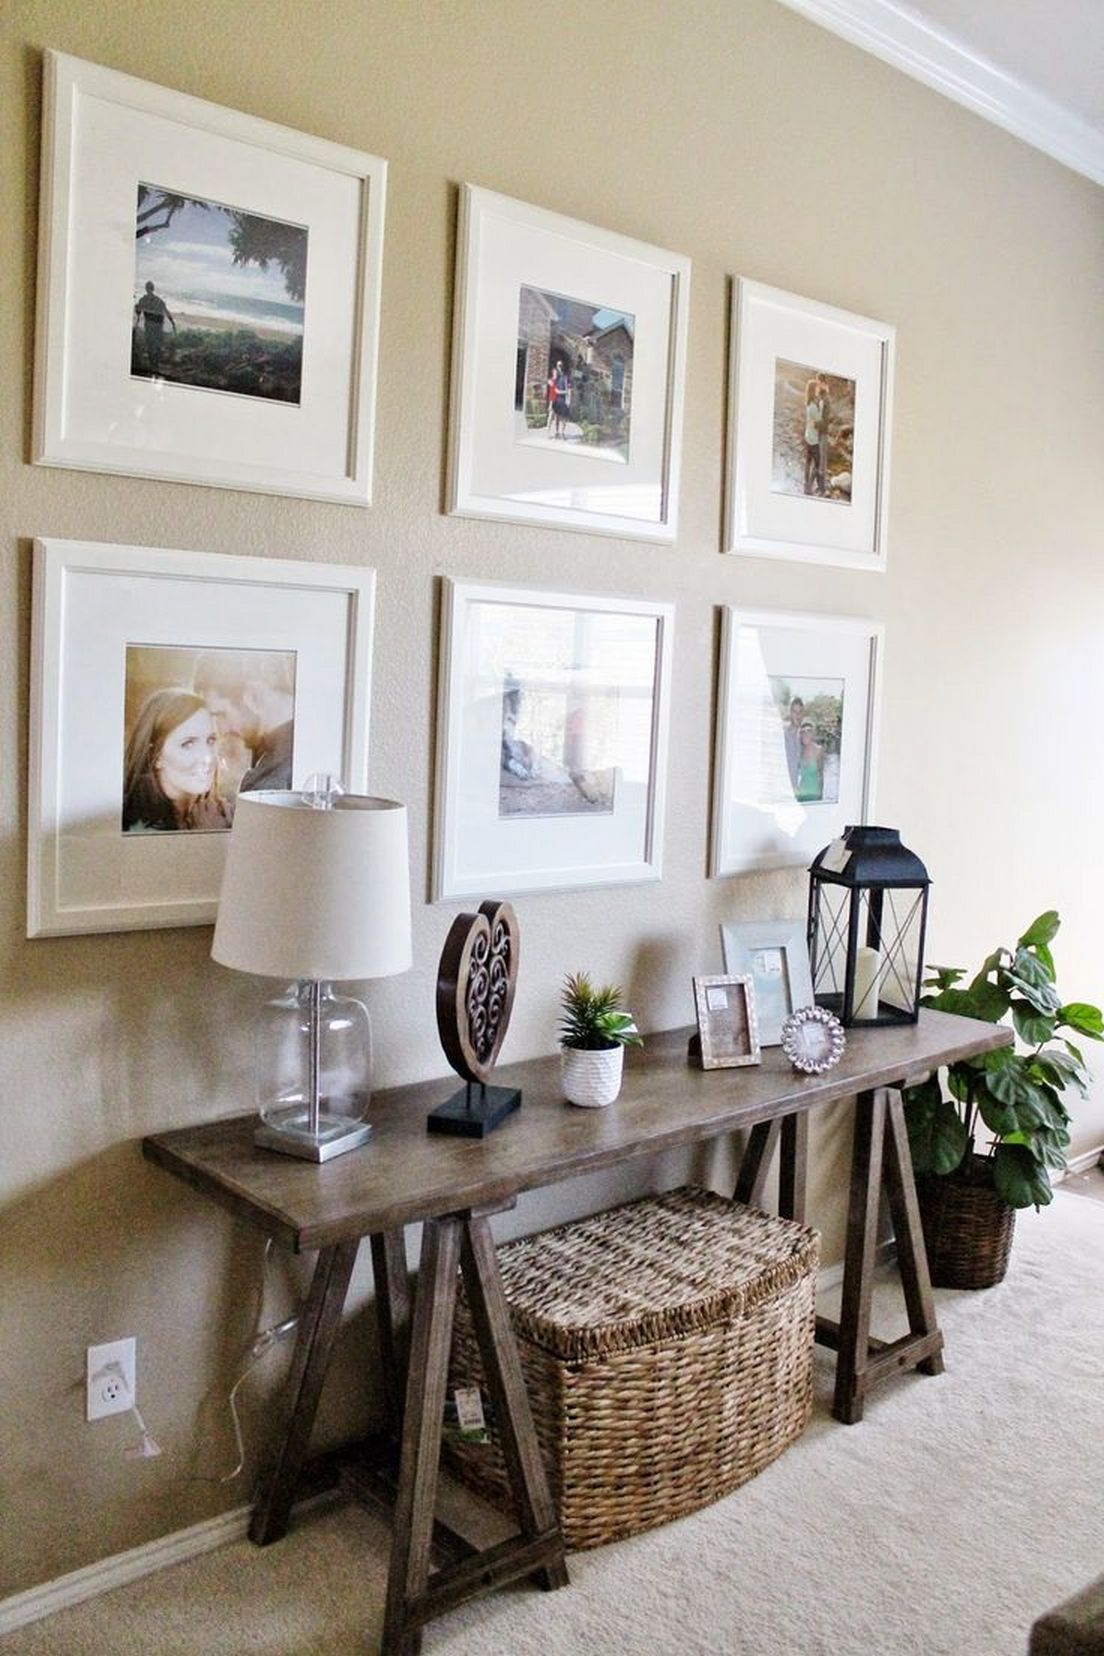 Living Room Decor Ikea Picture Frame Gallery Wall Decor ...